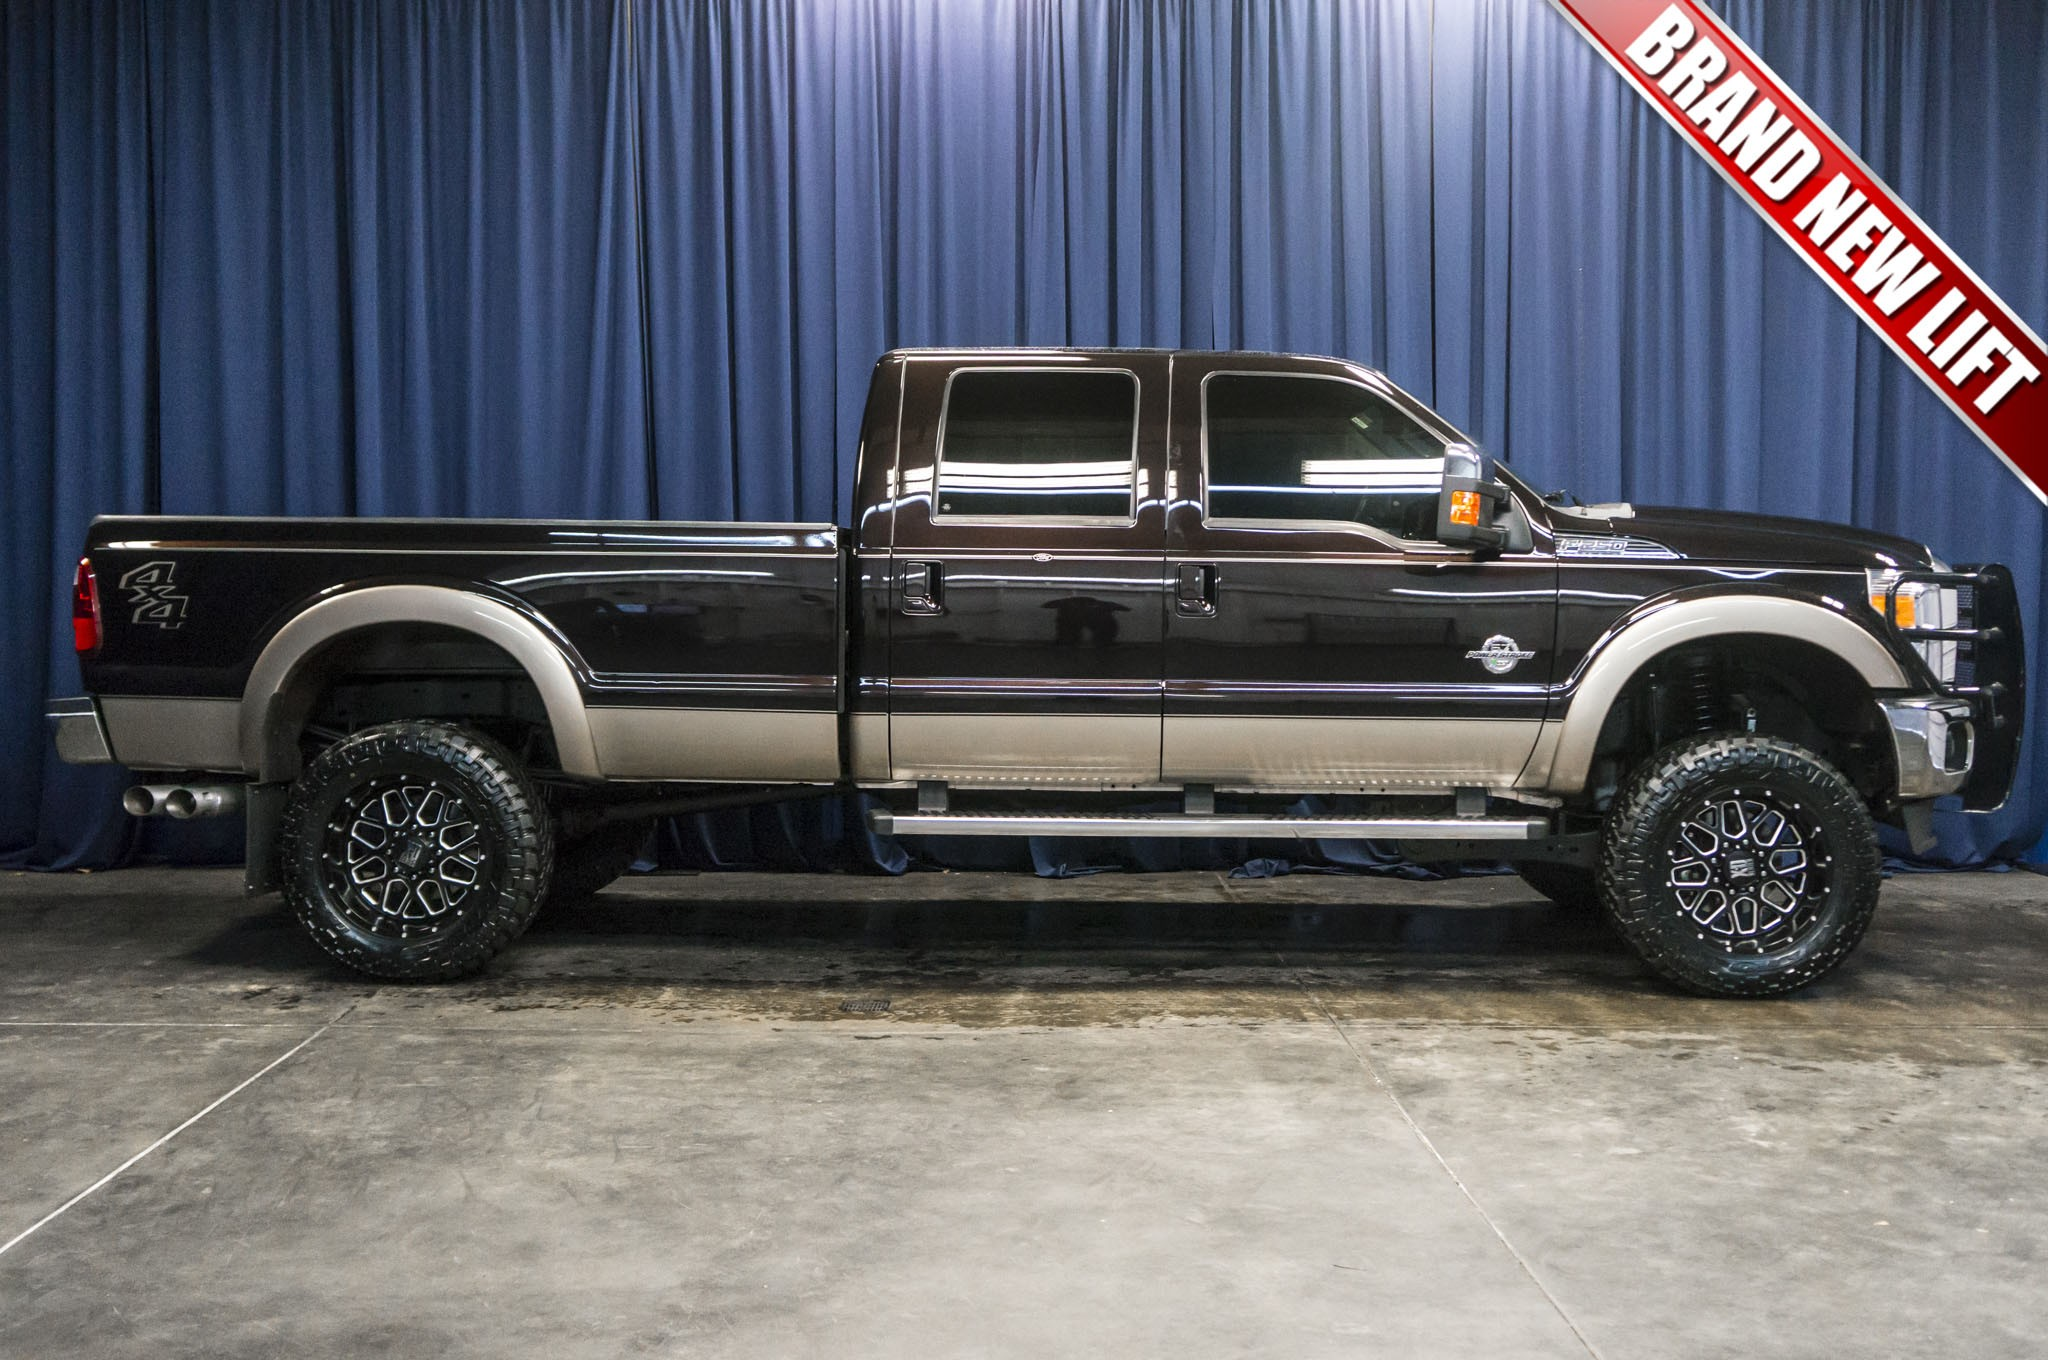 used lifted 2014 ford f 250 lariat 4x4 diesel truck for sale 35039. Black Bedroom Furniture Sets. Home Design Ideas